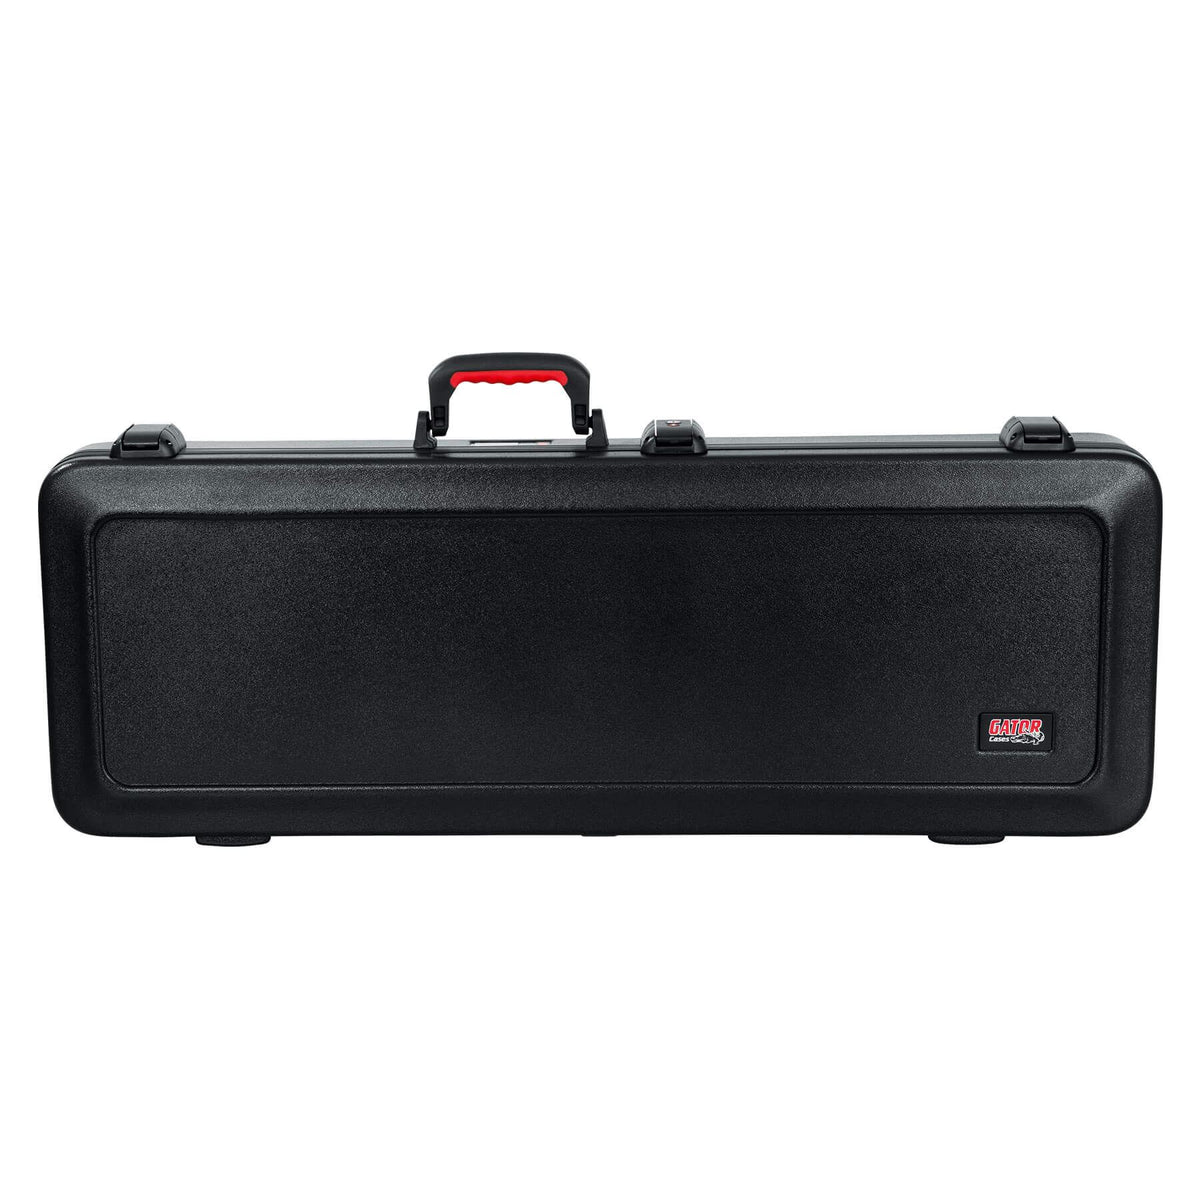 Gator TSA Electric Case fits Charvel DX-1 FR